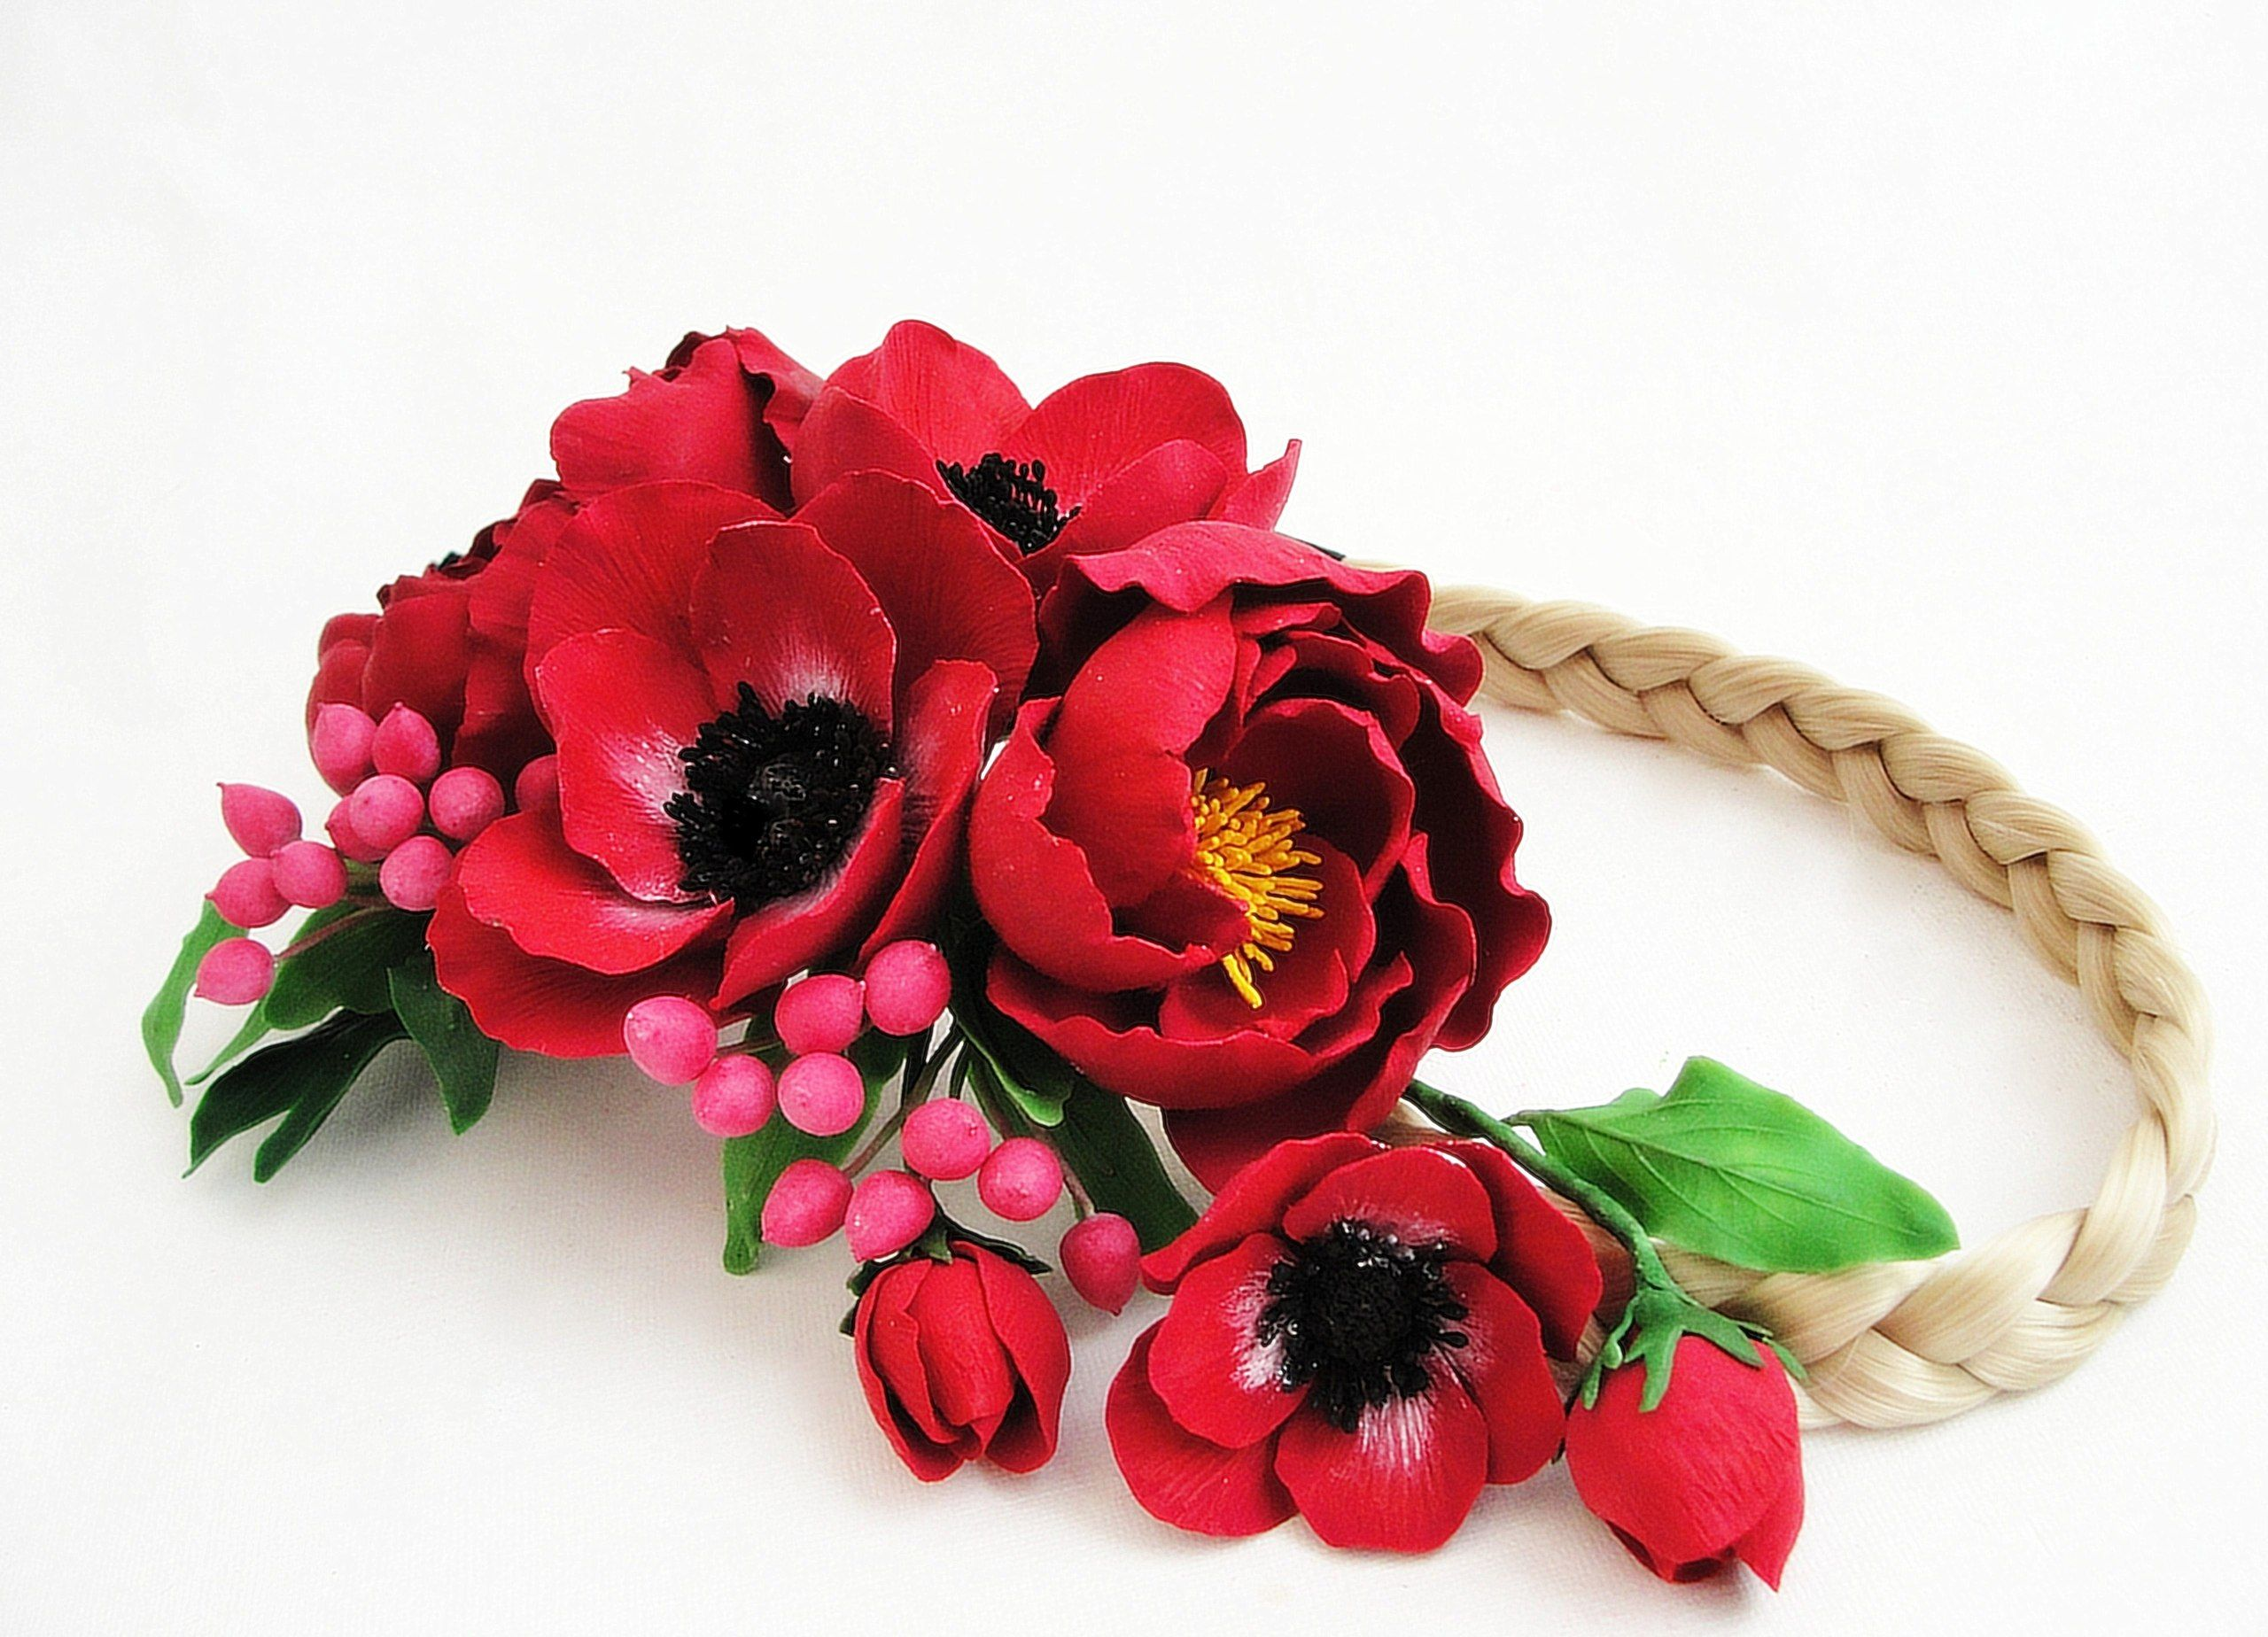 Flowers headband. Handmade. All flowers are made completely by hand from Claycraft by deco - air dry clay that is soft, durable and lightweight, non toxic. Keep it up from water or liquids. The flowers requires careful handling.